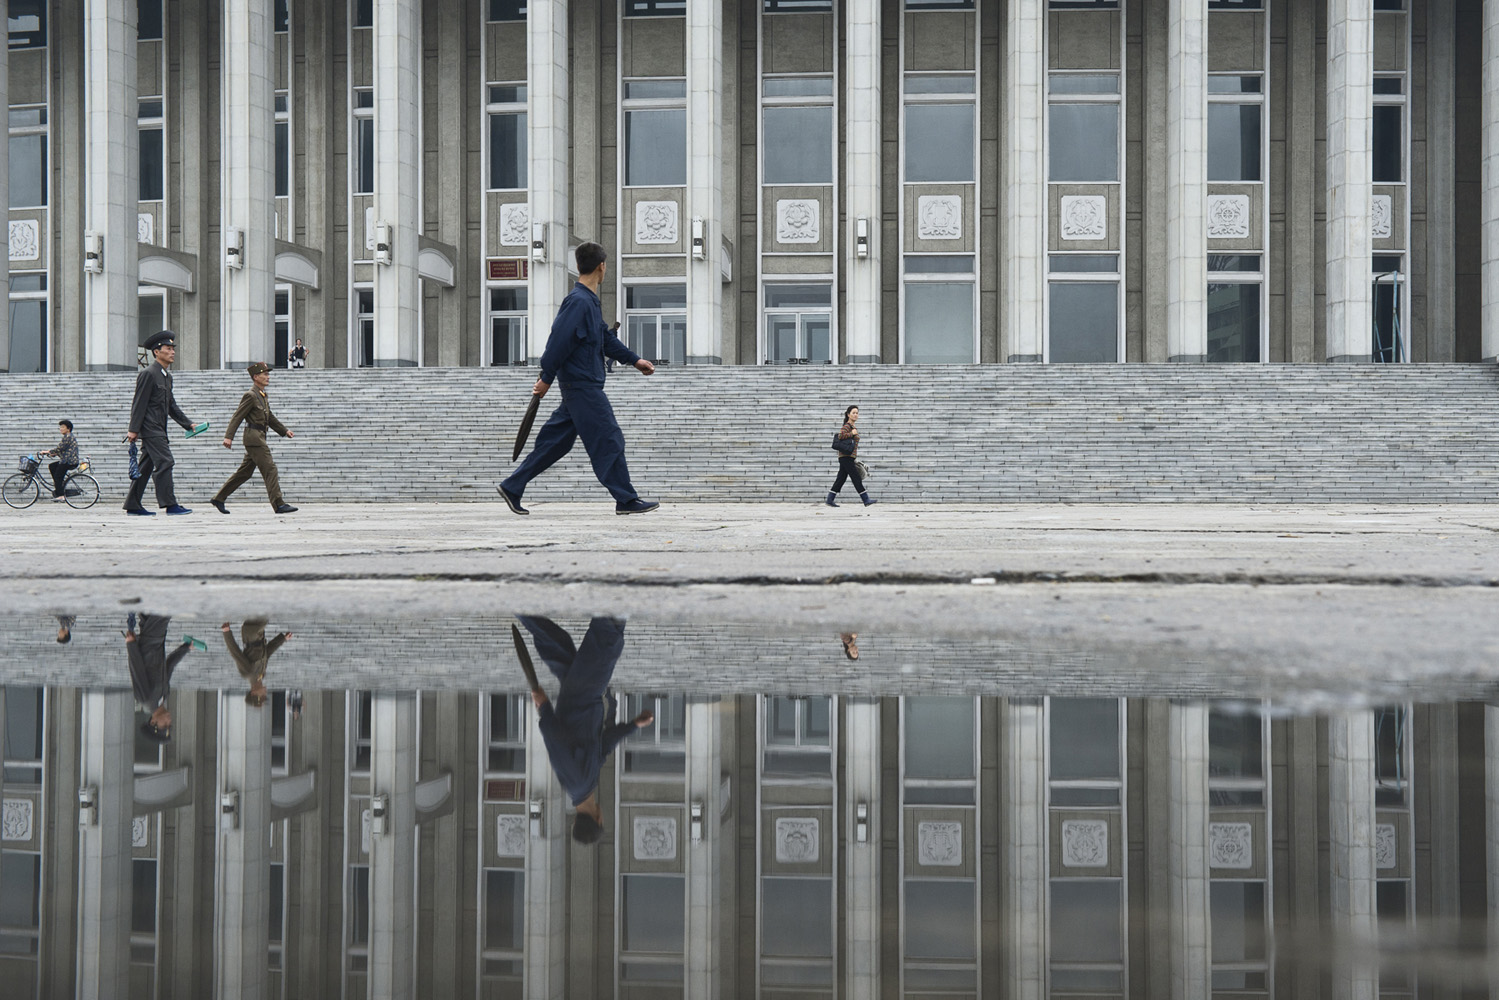 Reflection of people walking outside Hamhung Grand Theatre. Hamhŭng is an important chemical industry center in the DPRK. It is an industrial city which serves as a major port for North Korean foreign trade. Production includes textiles (particularly vinalon), metalware, machinery, refined oil and processed food. It is also said to be North Korea's largest center of methamphetamine production both for export and illicitly for internal consumption.